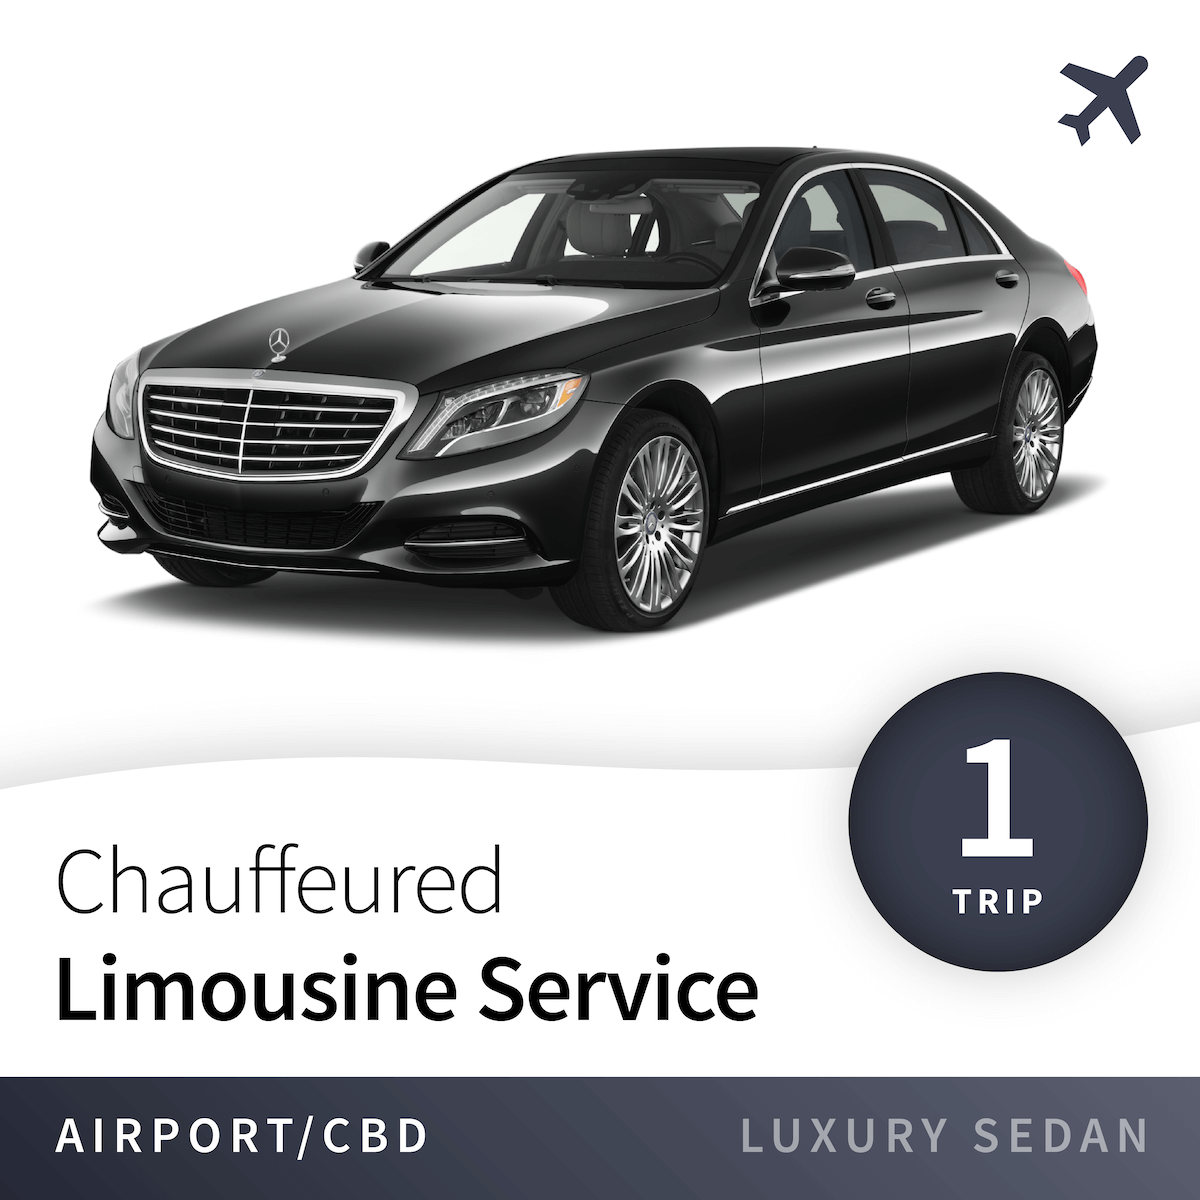 Chauffeured Limousine Service - Airport - Luxury Sedan (1 Trip) 8